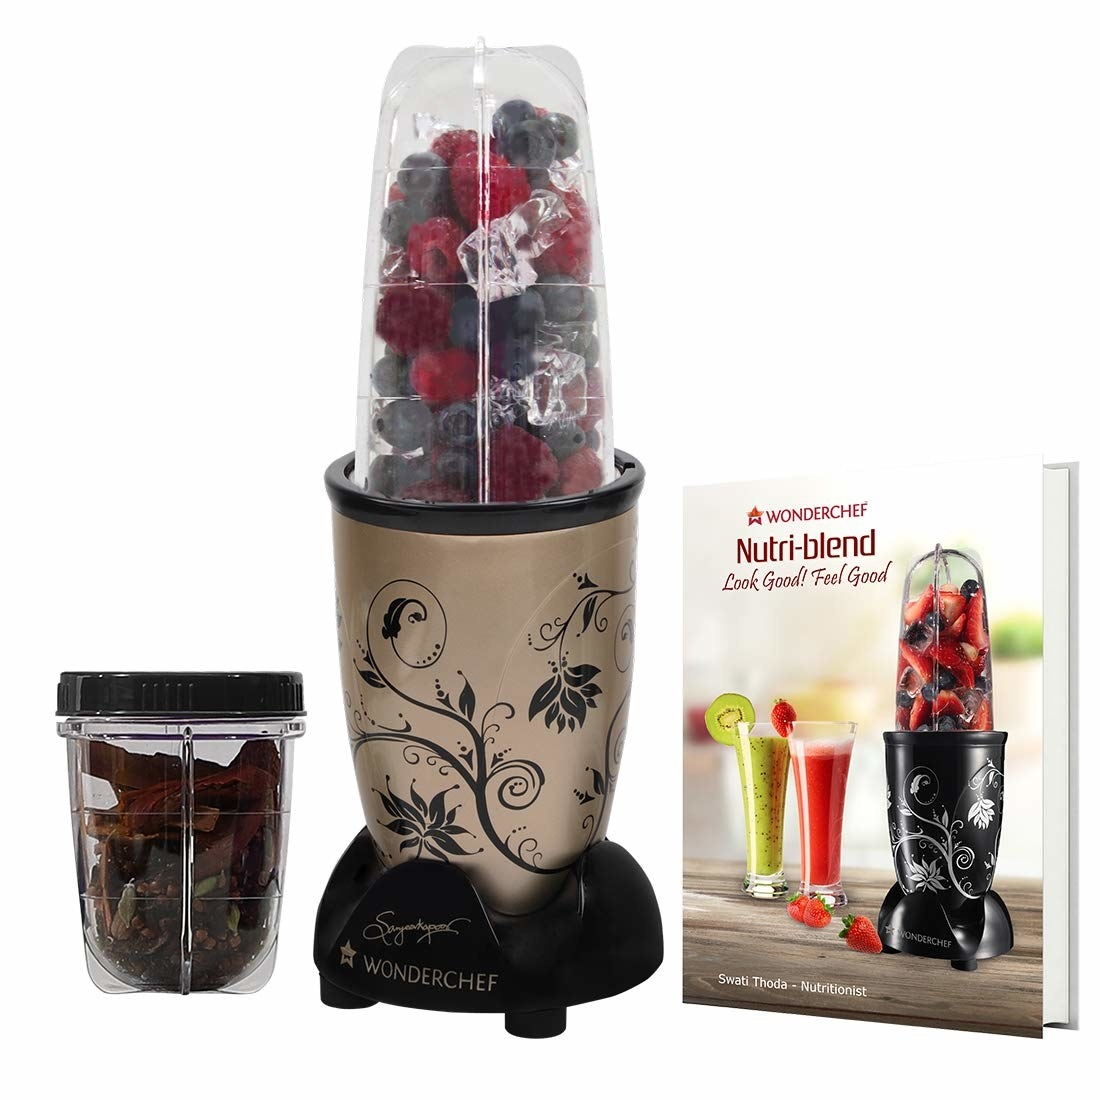 The Nutri-blend pictured with fruits in the blender jar and whole spices in the small grinder jar.